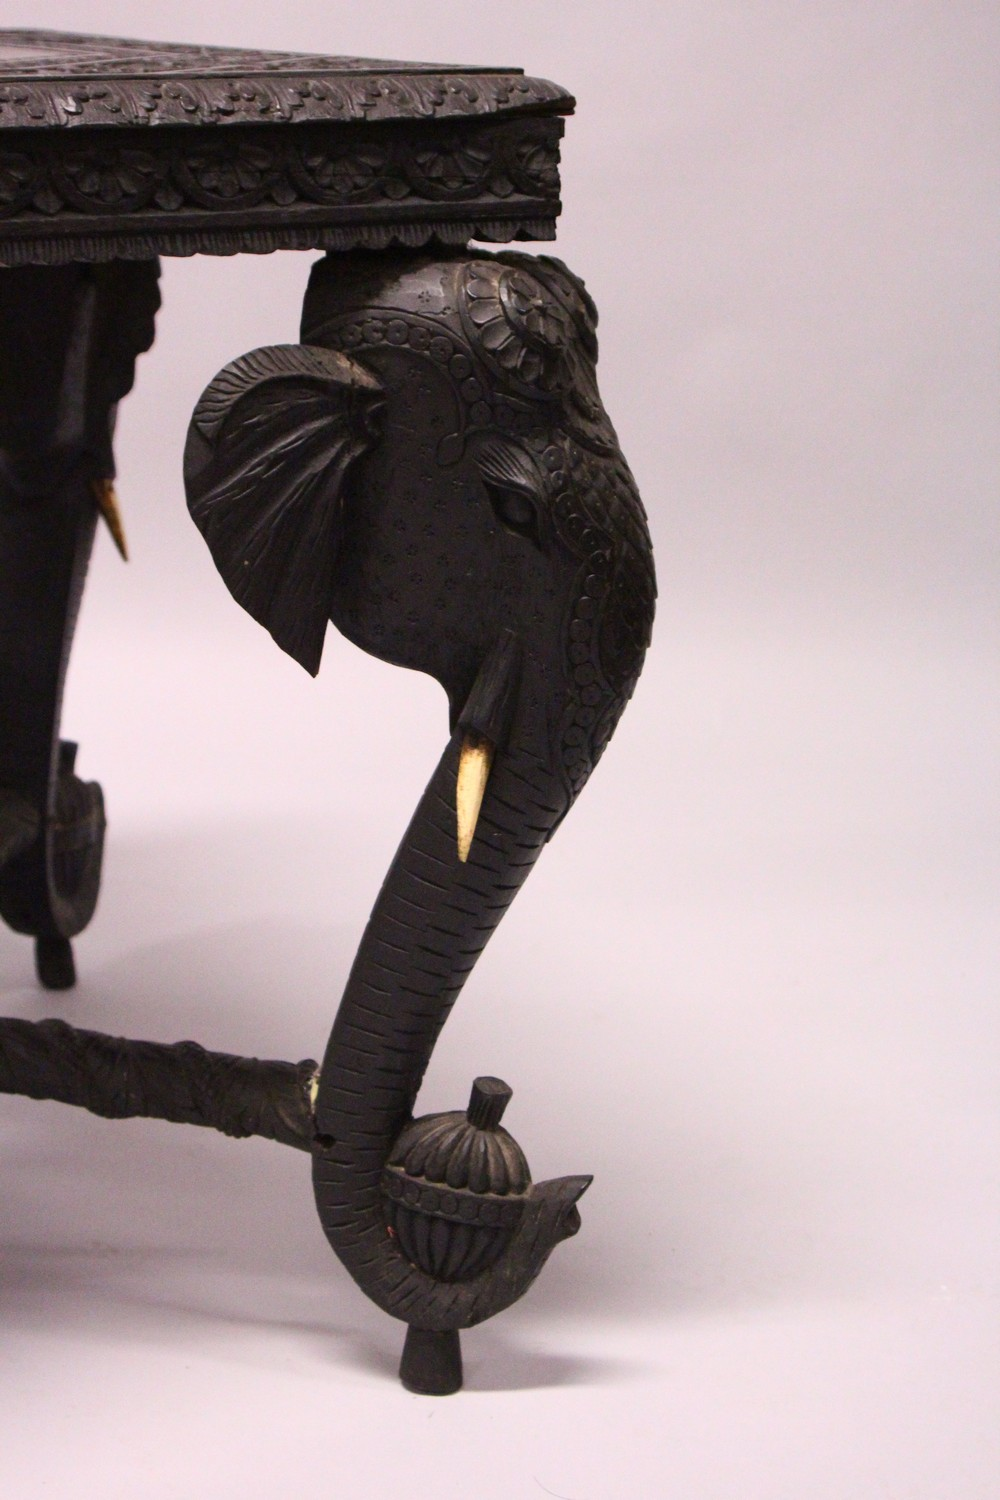 Lot 1017 - AN EARLY 20TH CENTURY CEYLONESE CARVED EBONY LOW TABLE, with an elephant head leg to each corner.